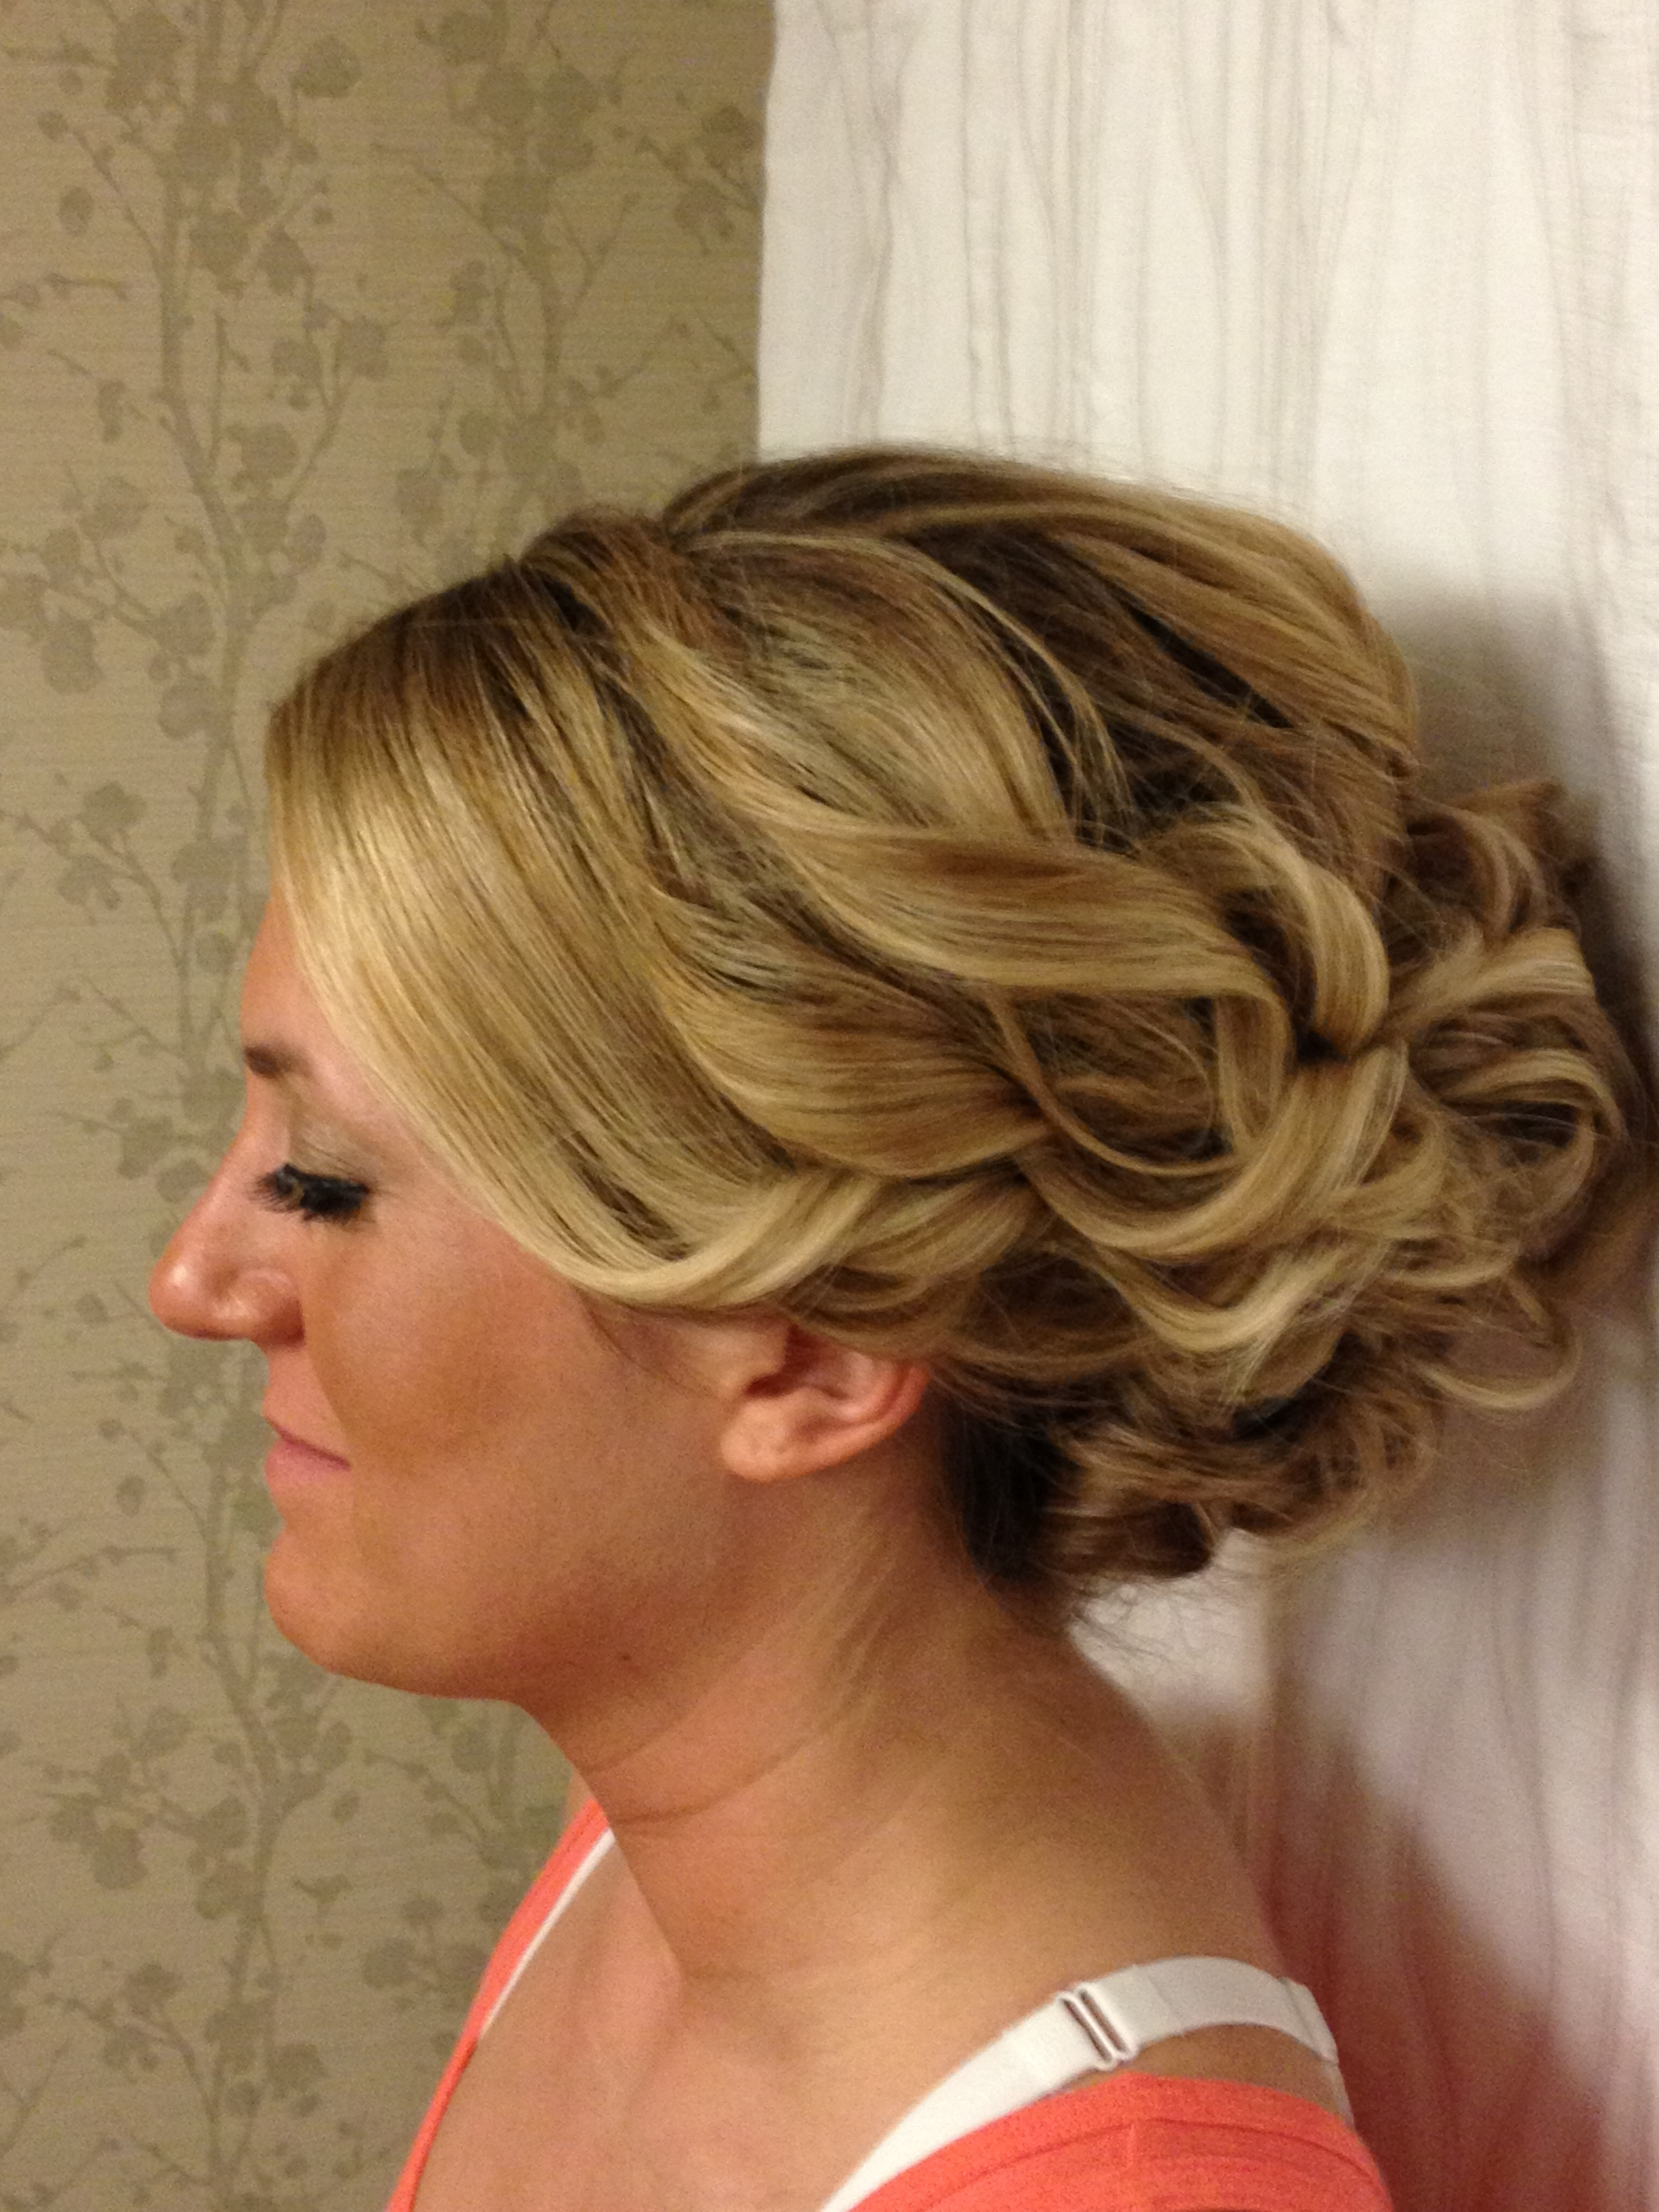 Hairstyles Updos Tumblr Updo For Prom Long Thick Impressive Hair Throughout Soft Updos For Long Hair (View 9 of 15)